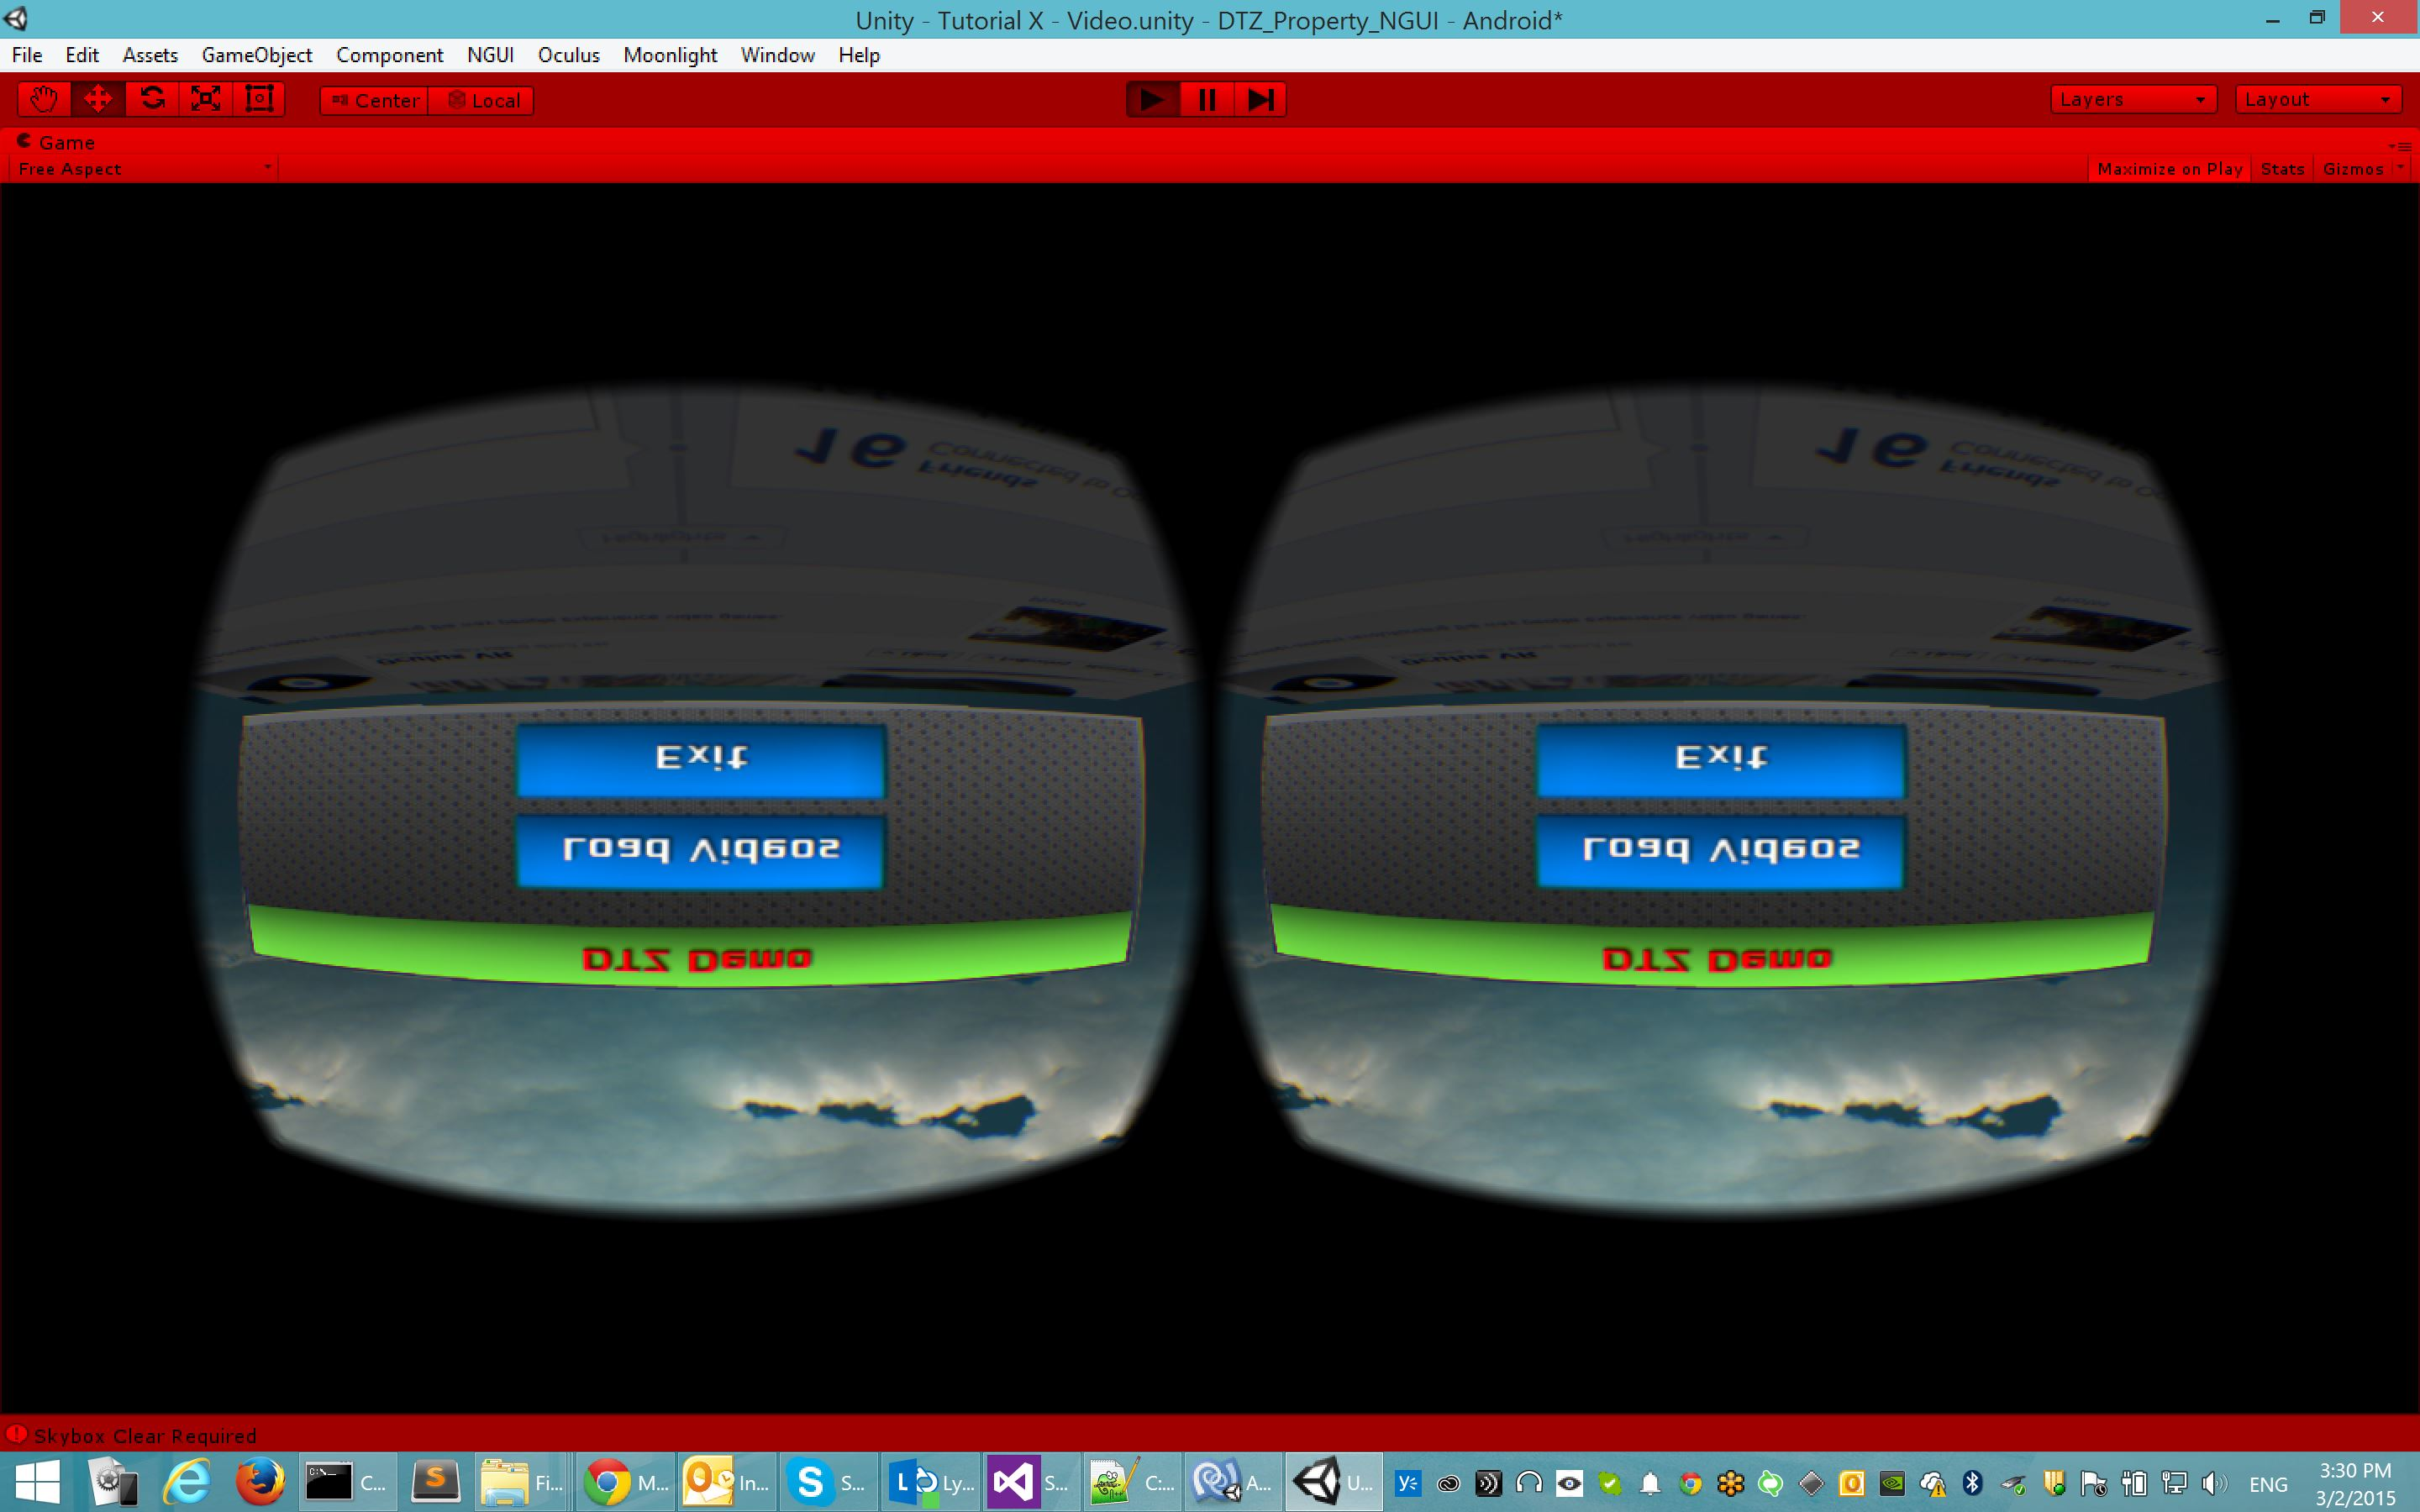 capture samsung gear vr touch input with unity - Unity Forum